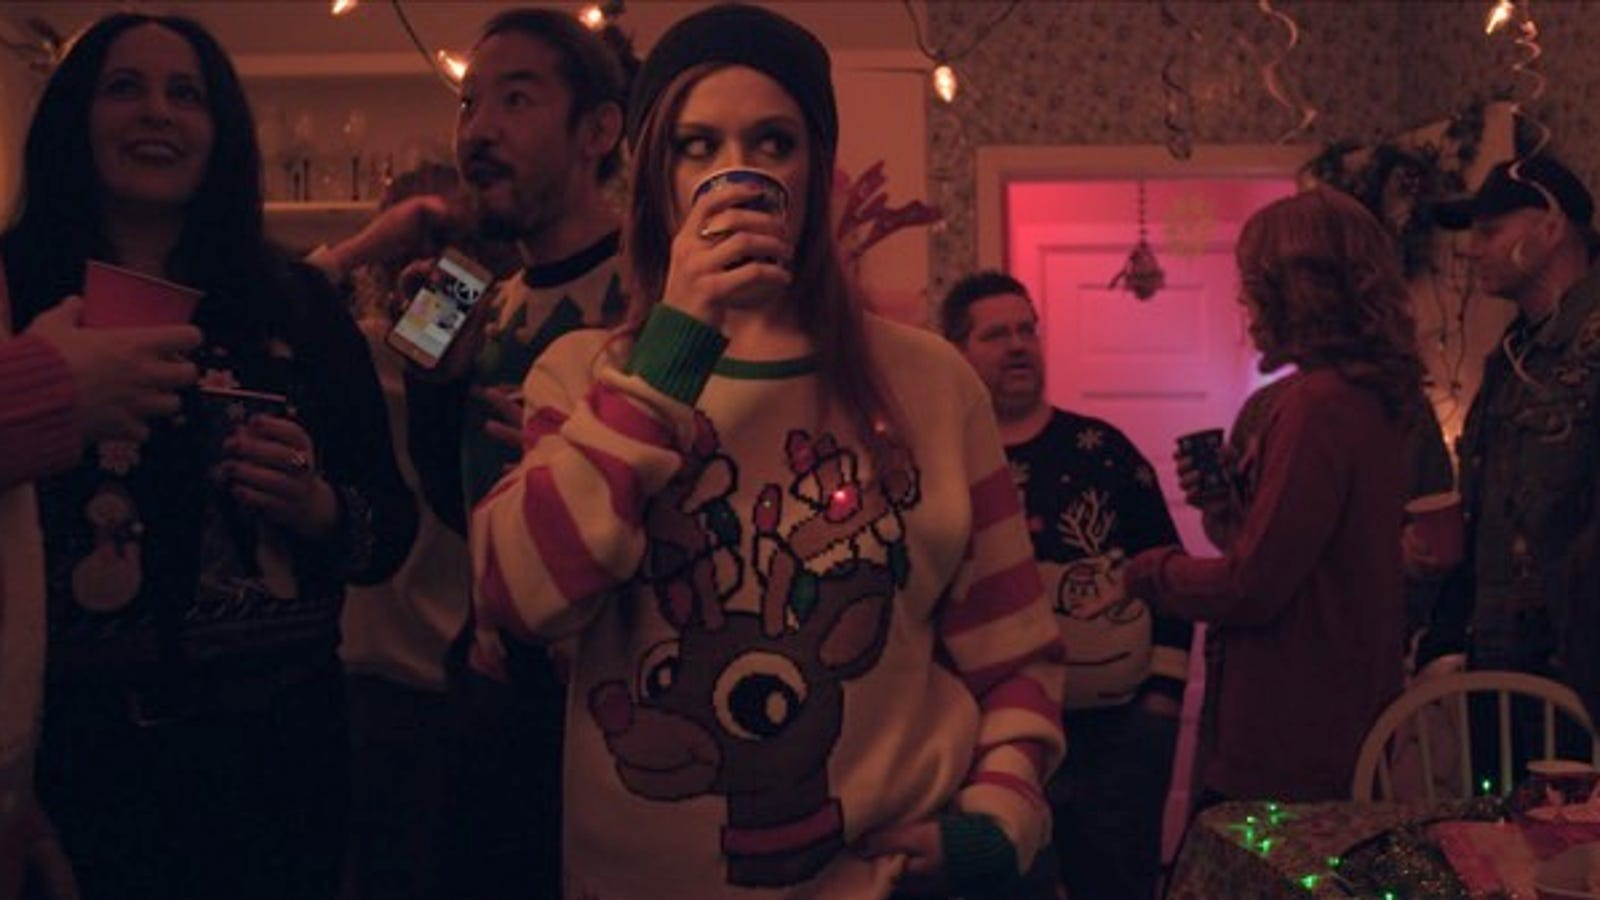 A Slasher Crashes an Ugly Sweater Party in Holiday Horror Short Do You See What I See?